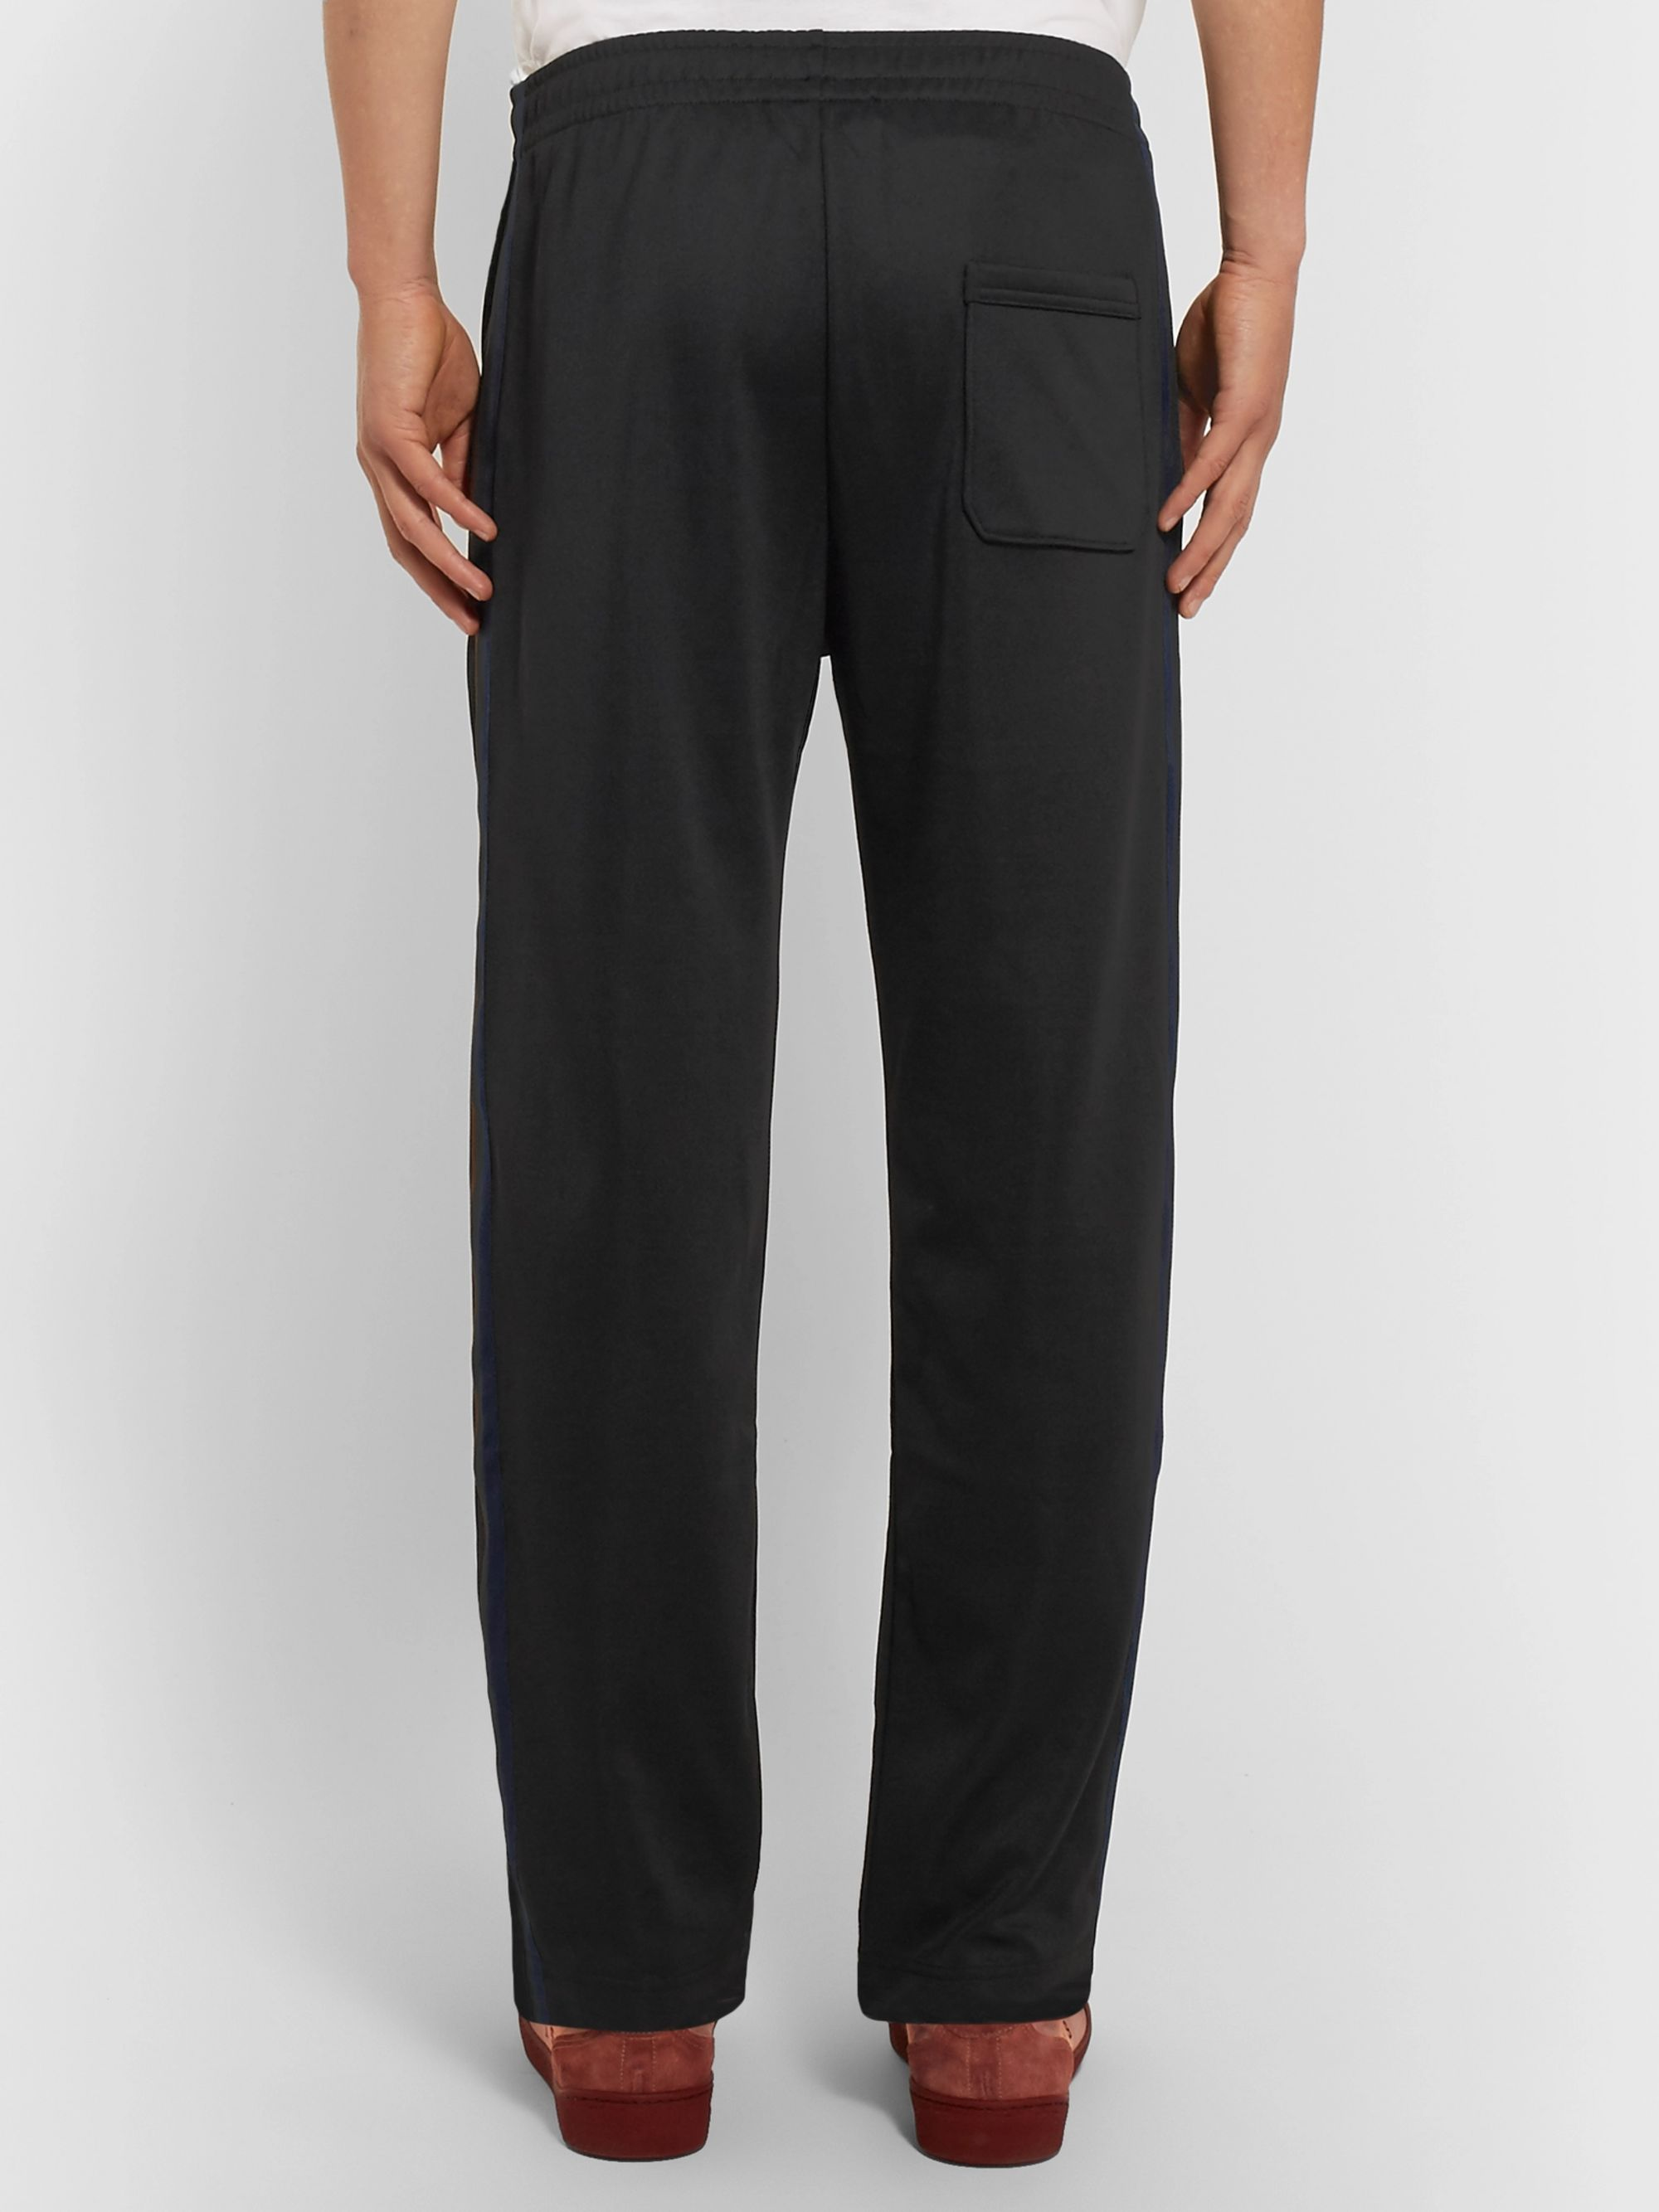 Acne Studios Norwich Grosgrain-Trimmed Jersey Sweatpants